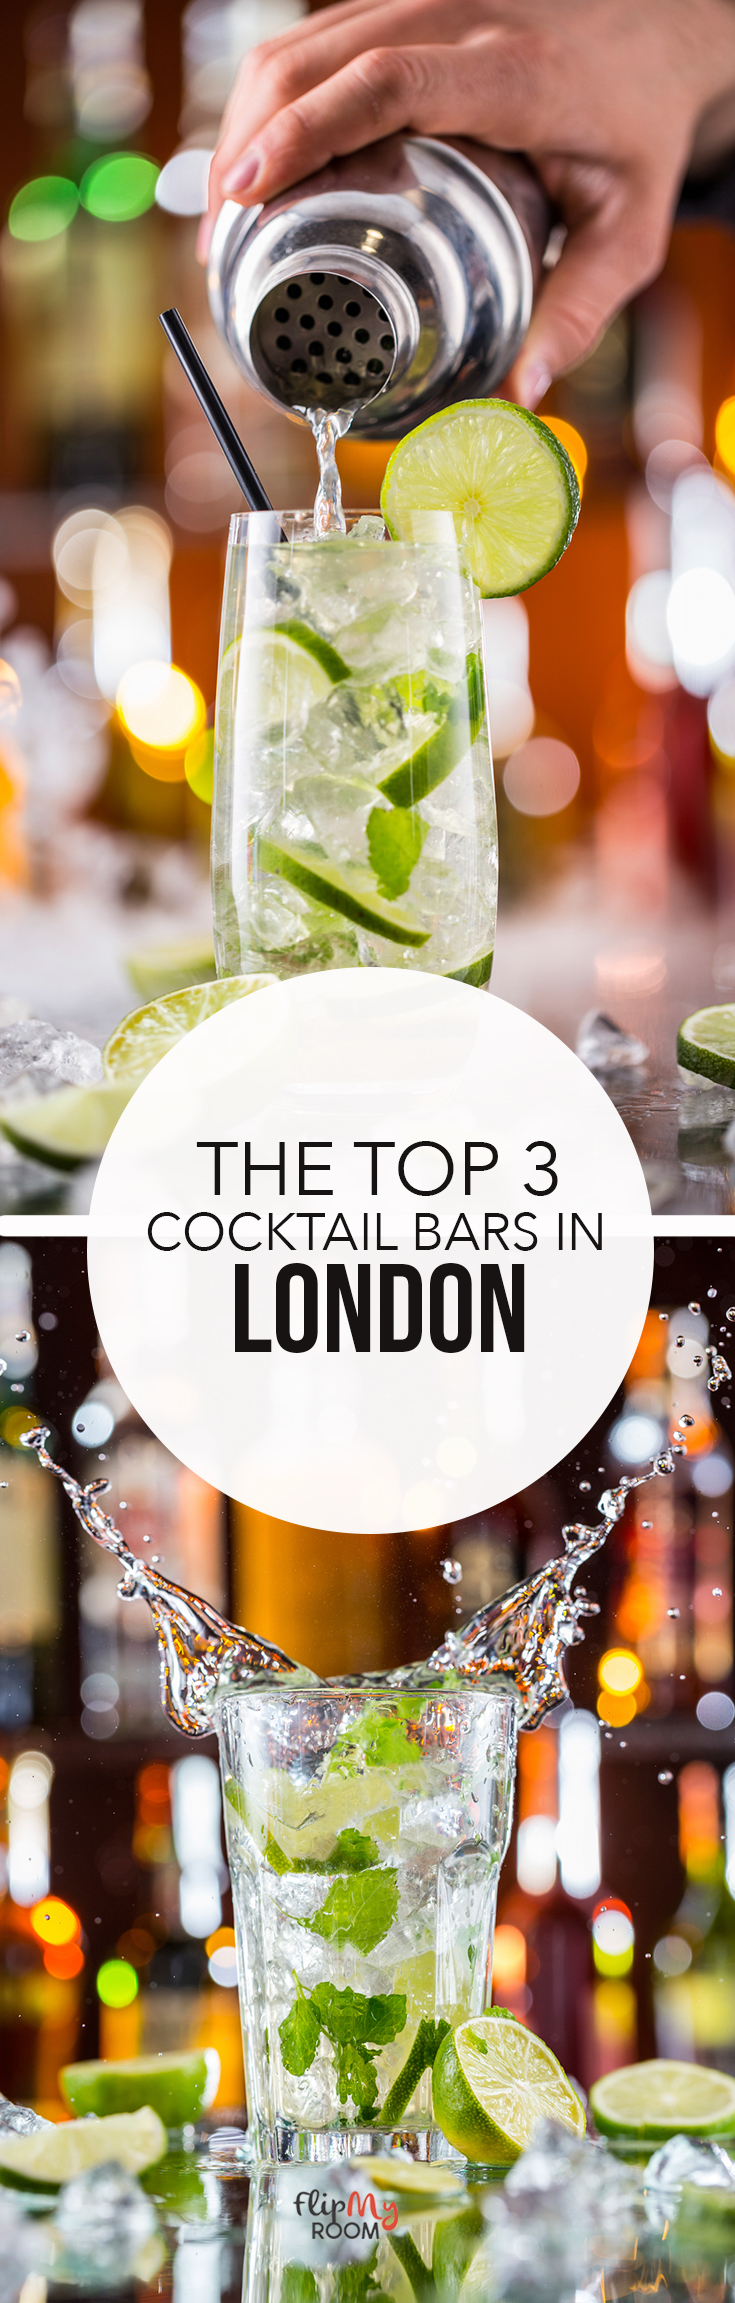 The Top 3 Cocktail Bars in London | London bars, Foodie ...